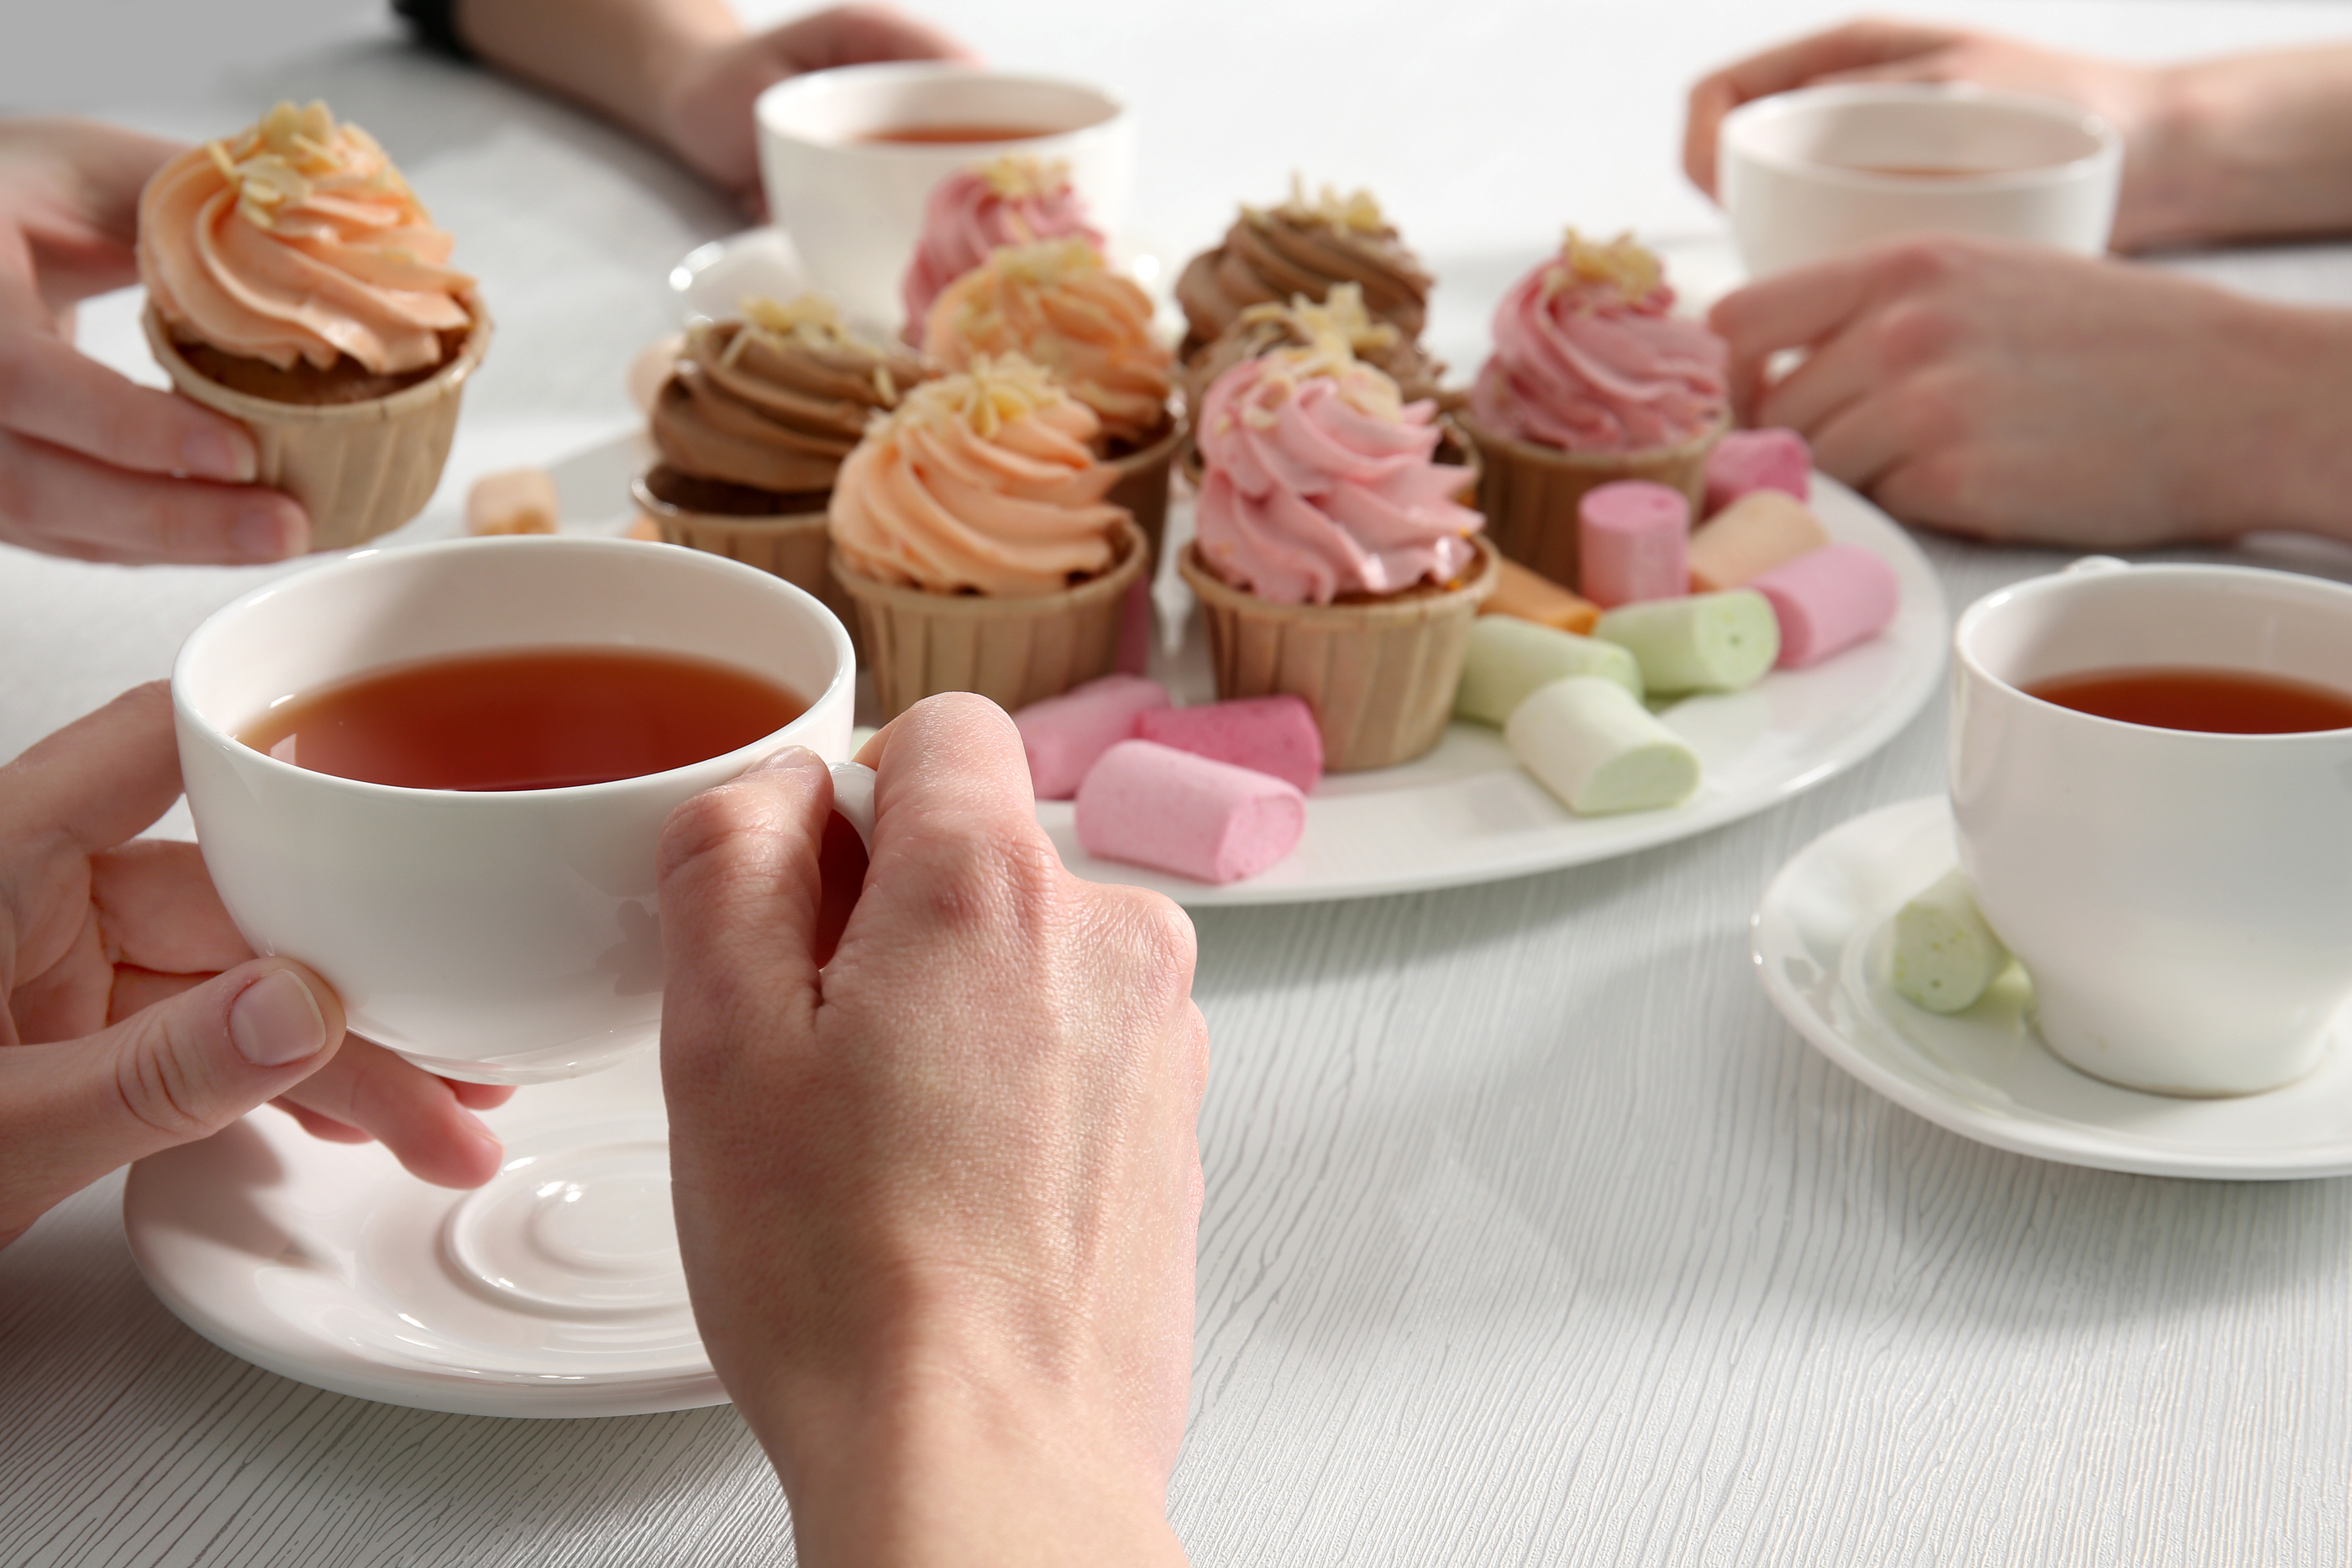 Tea Party with sweet creamy cakes over wooden table background